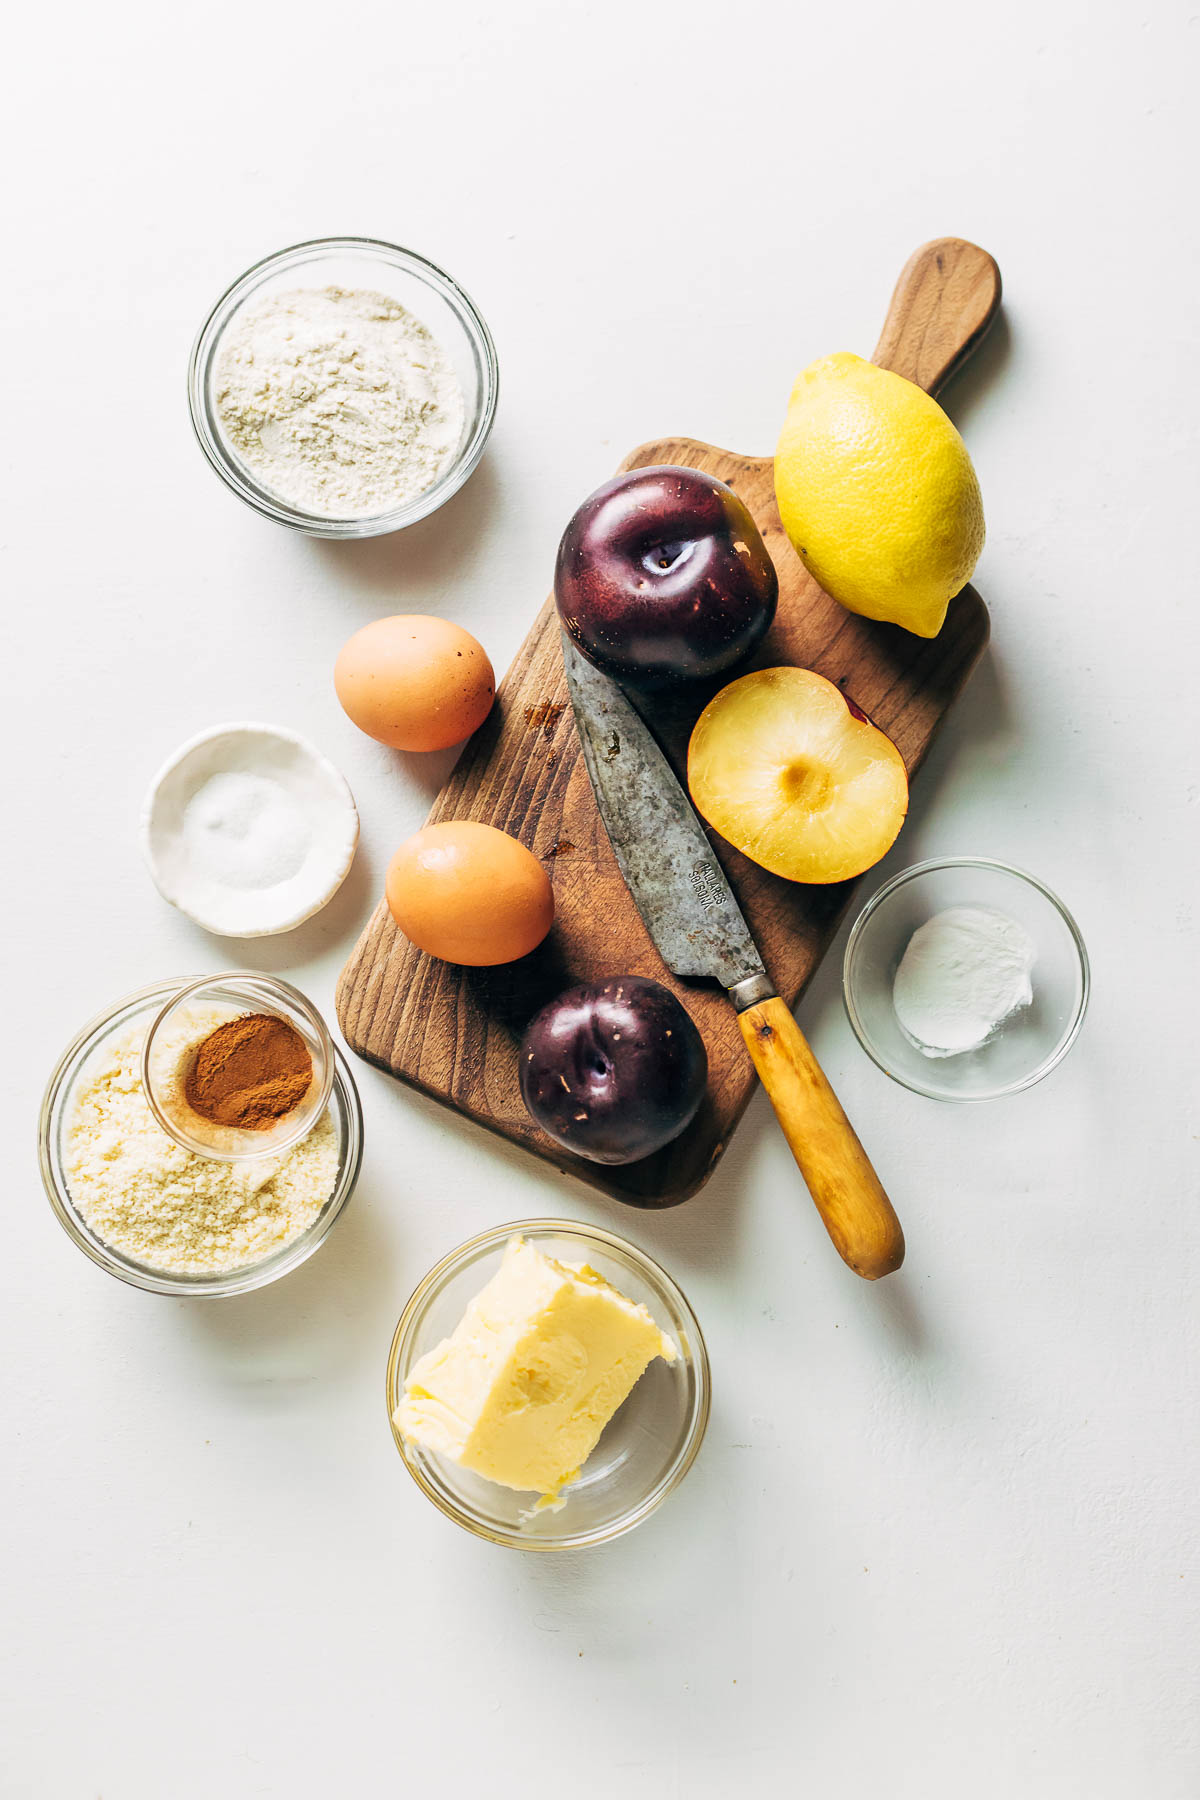 Overhead shots of ingredients needed to make a plum torte.